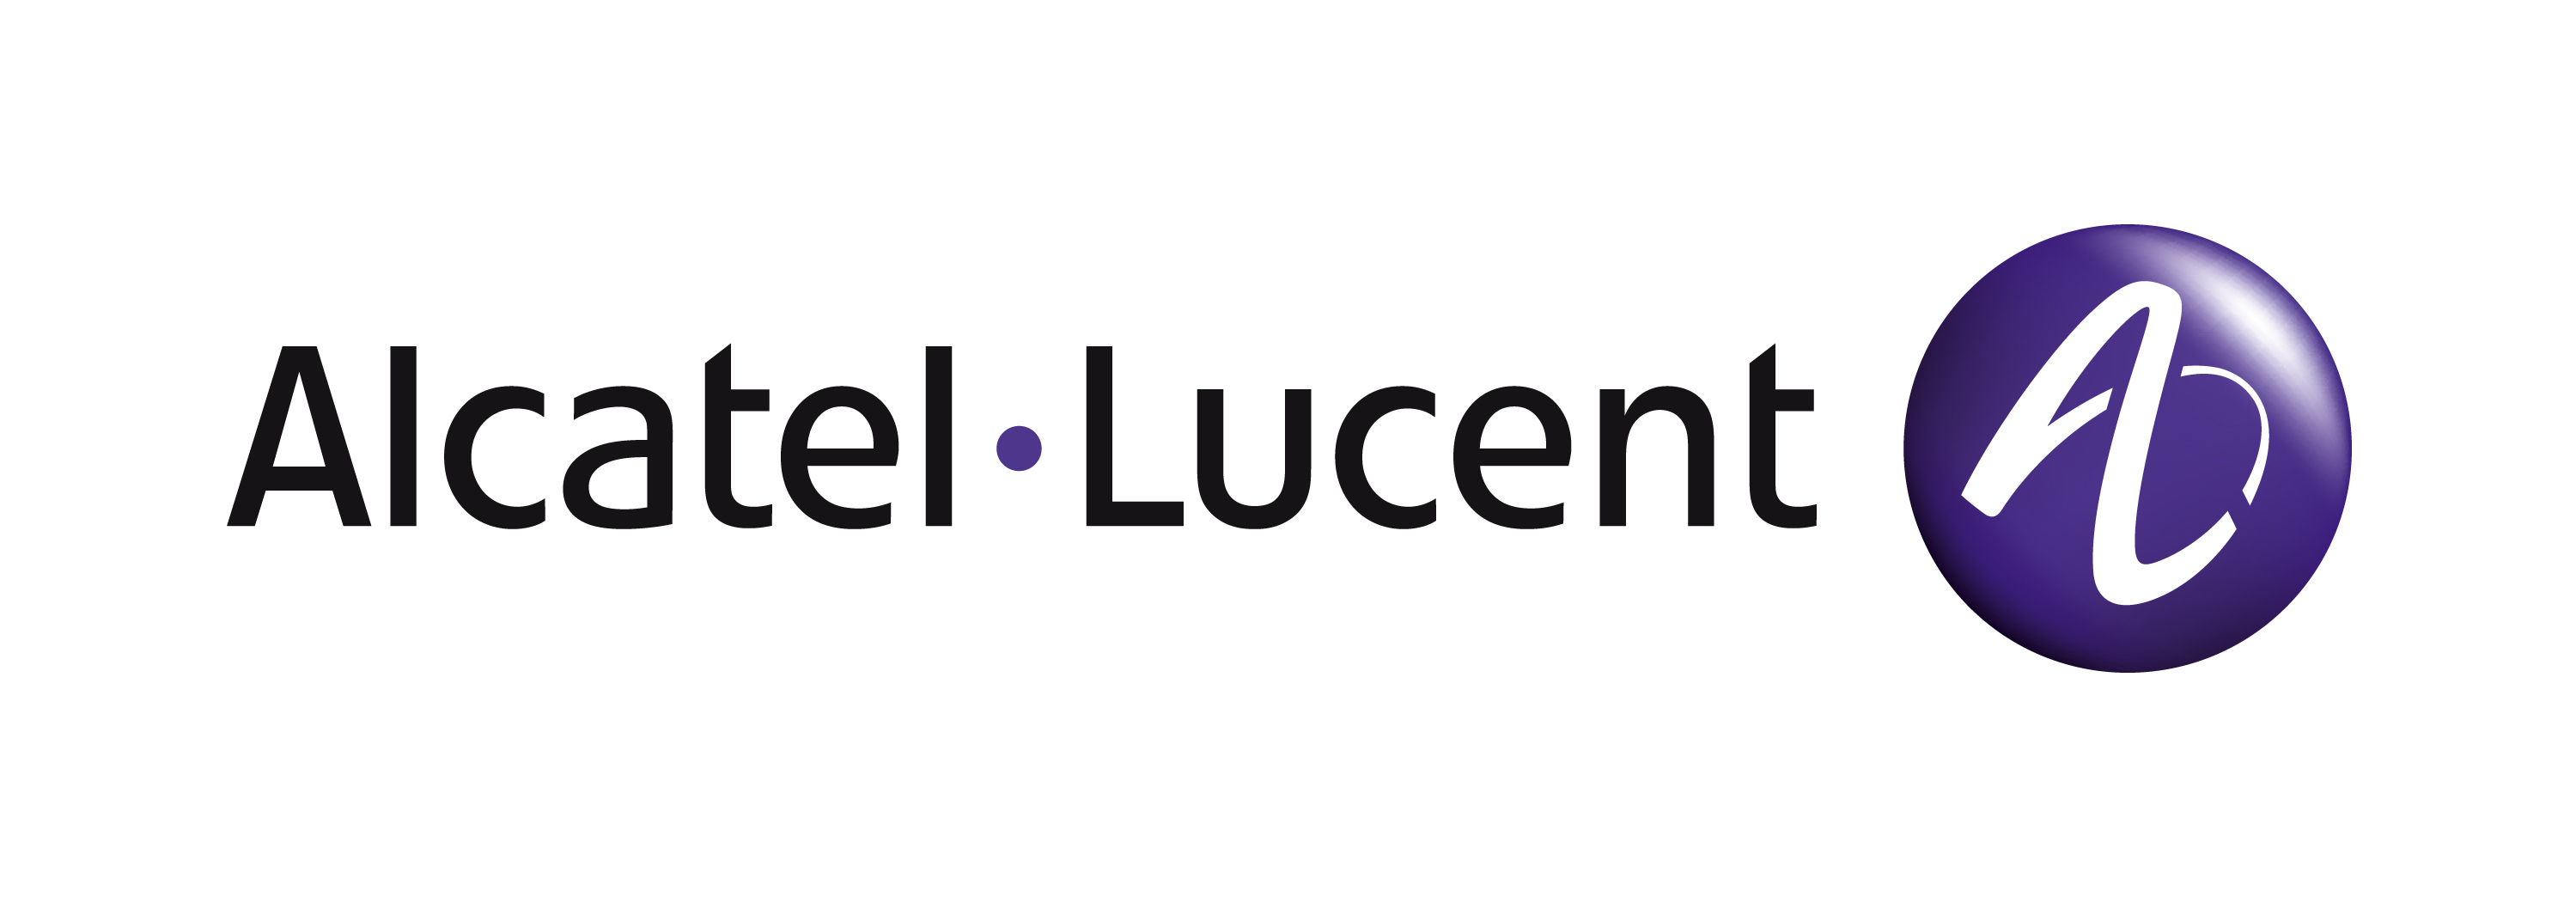 Data Appending and Email Appending for Alactel Lucent